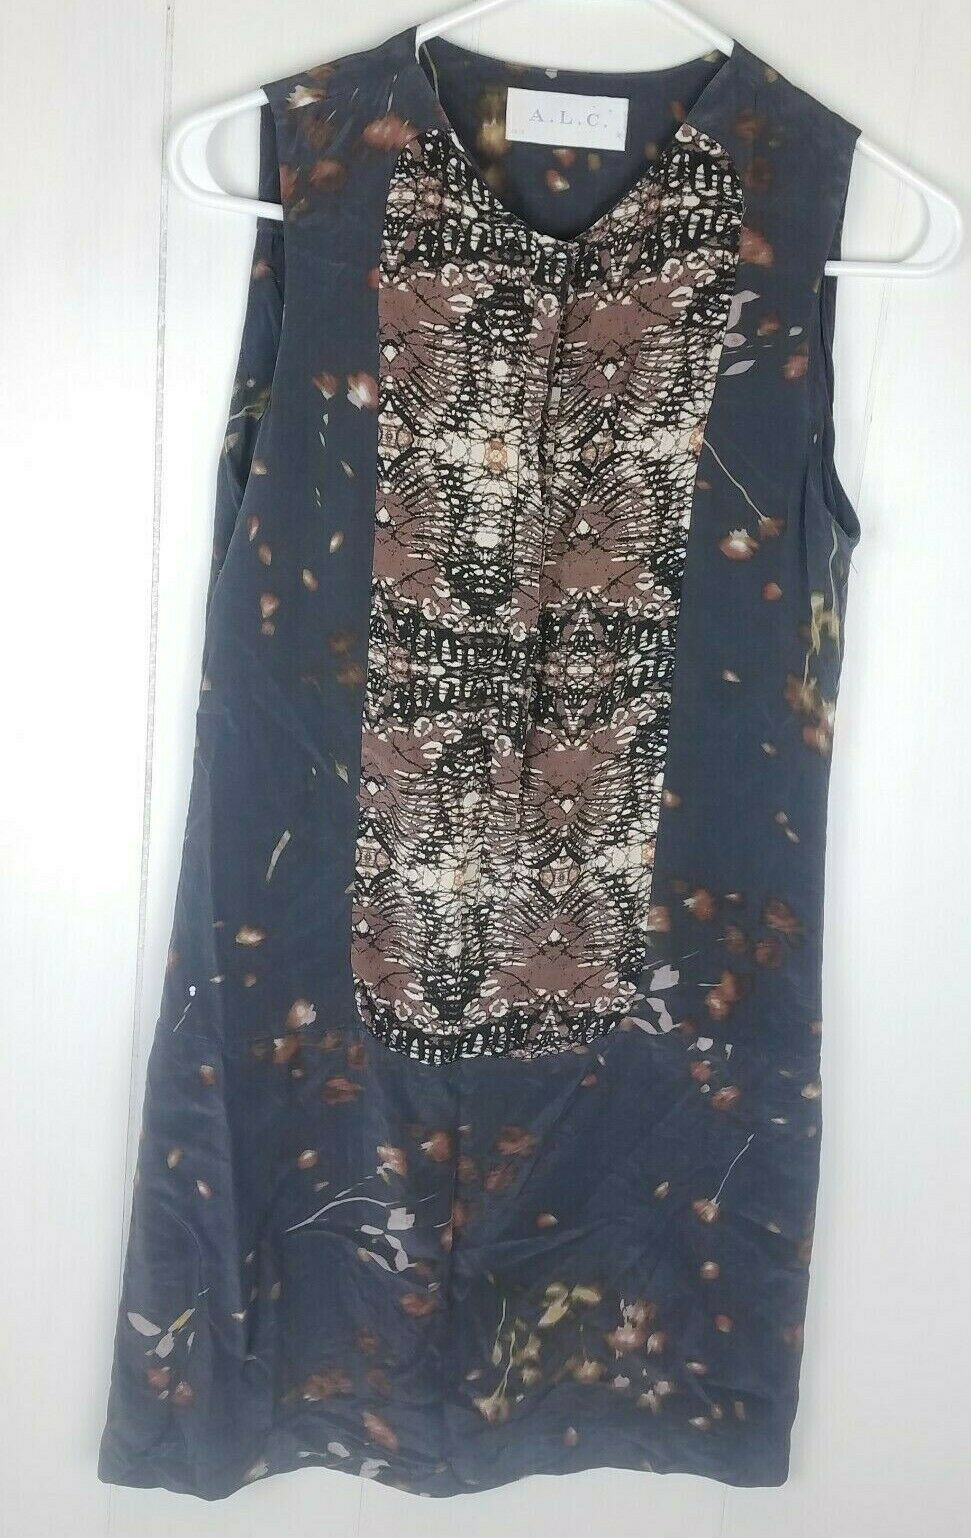 A.L.C Sera Tux Dress damen Größe 2 Silk Sleeveless Batik Blau braun